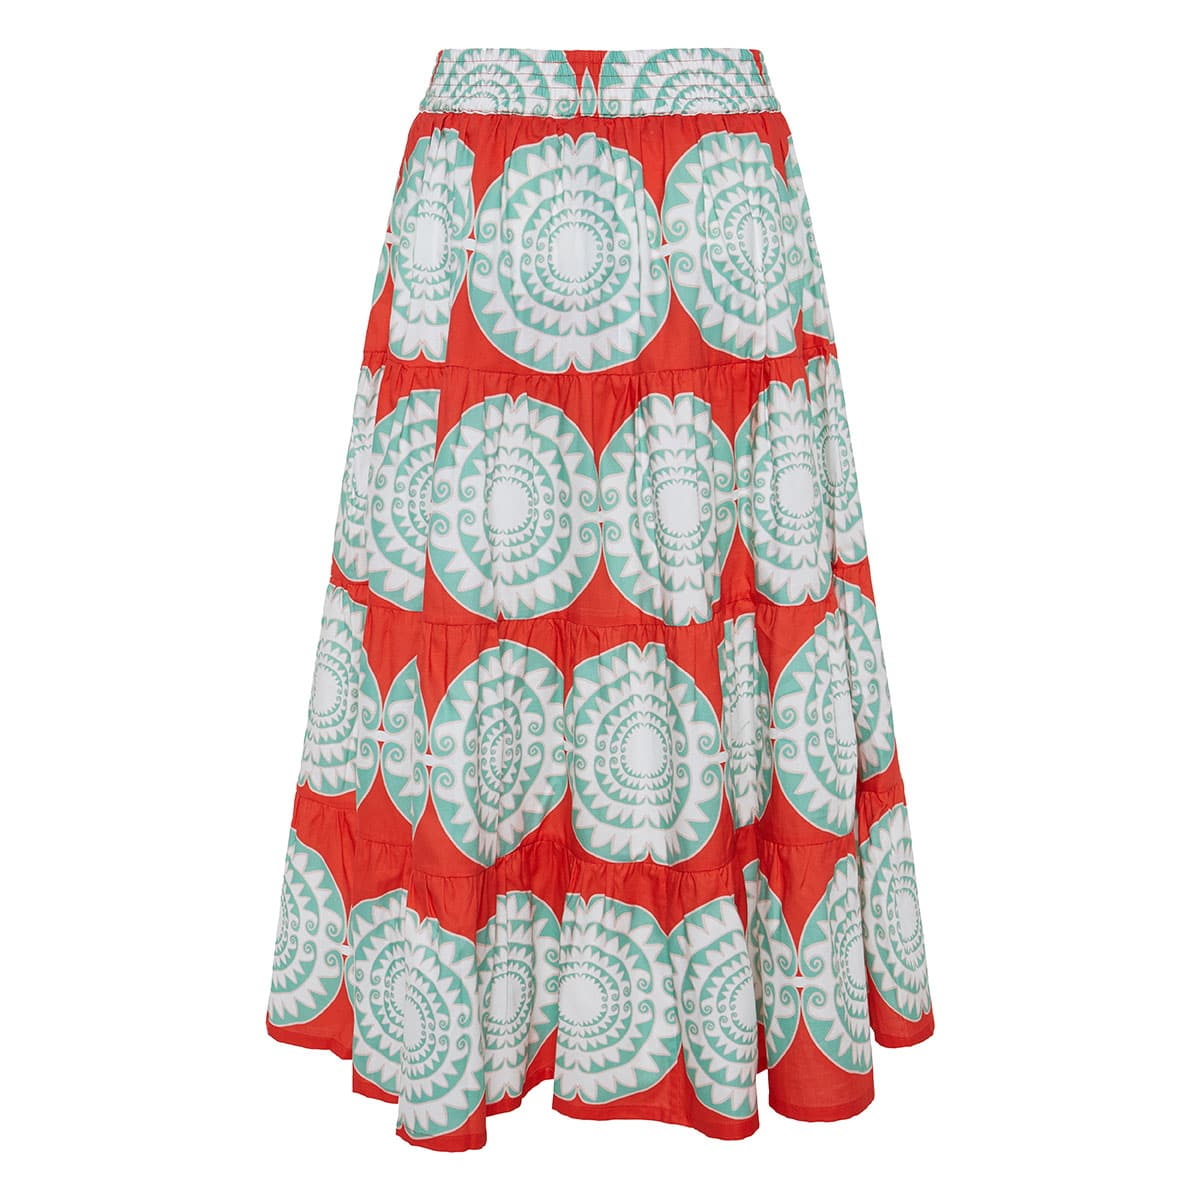 Loukoumi printed tiered skirt